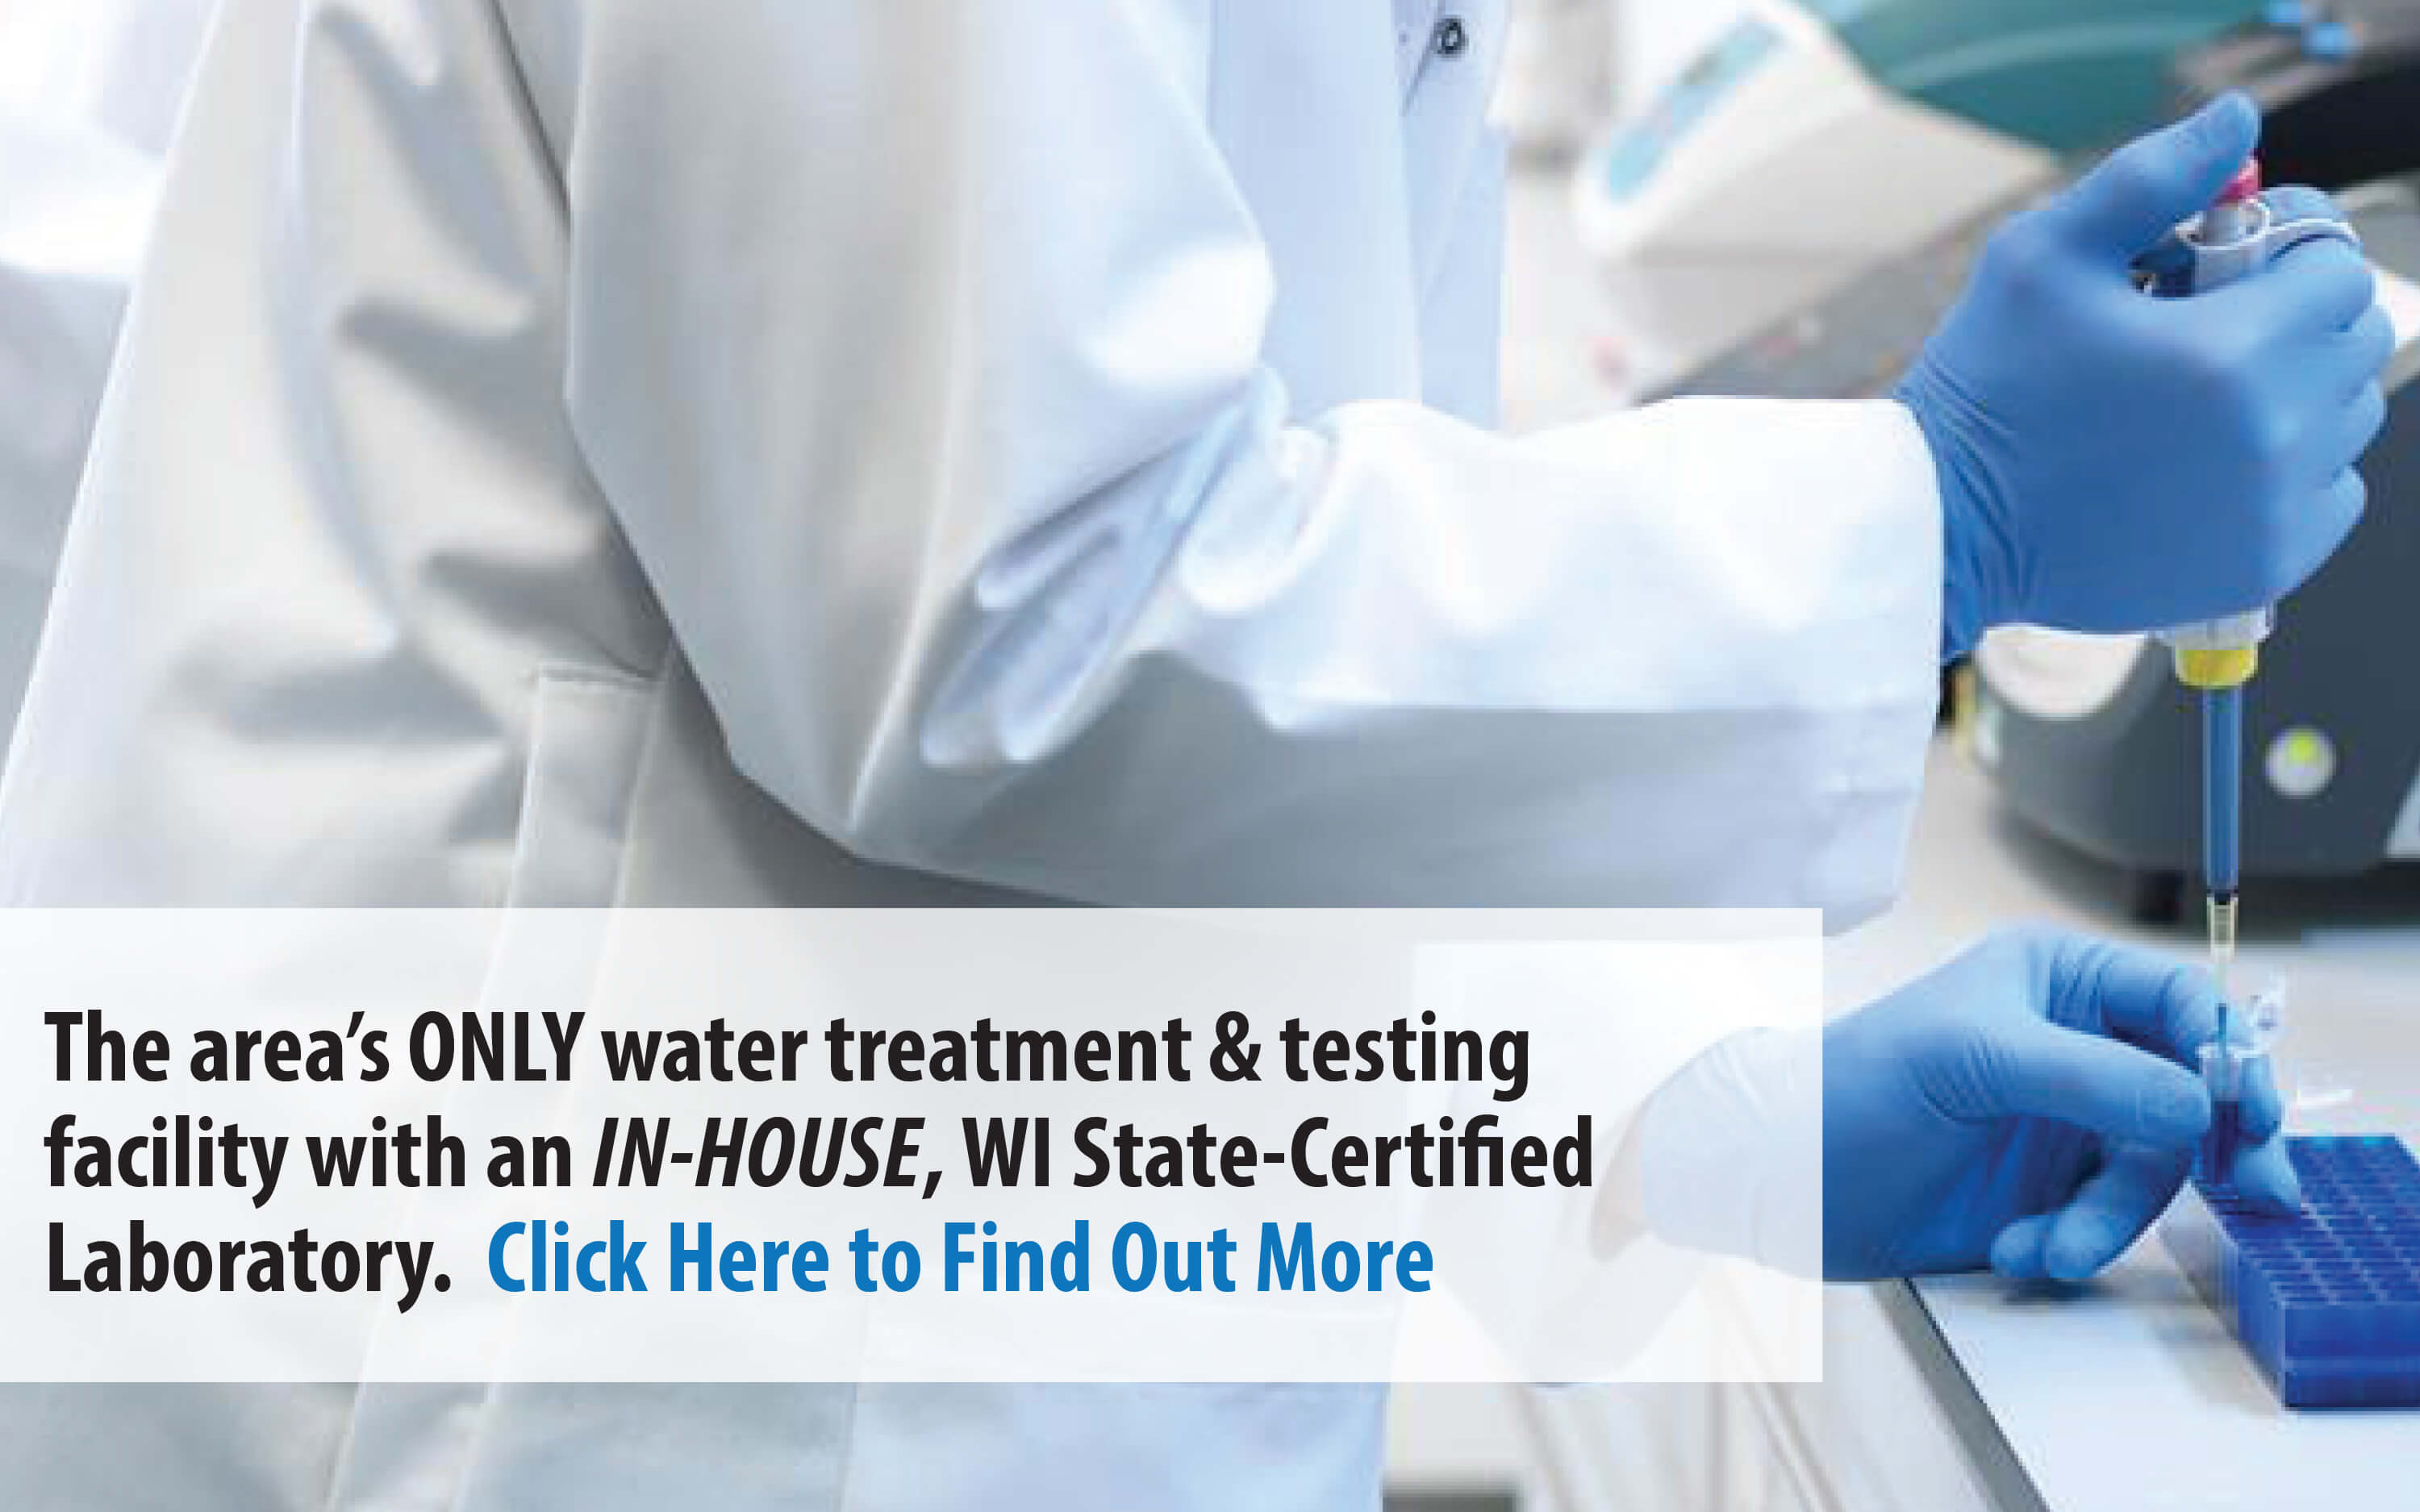 We house the area's only in-house, state-certified water testing laboratory